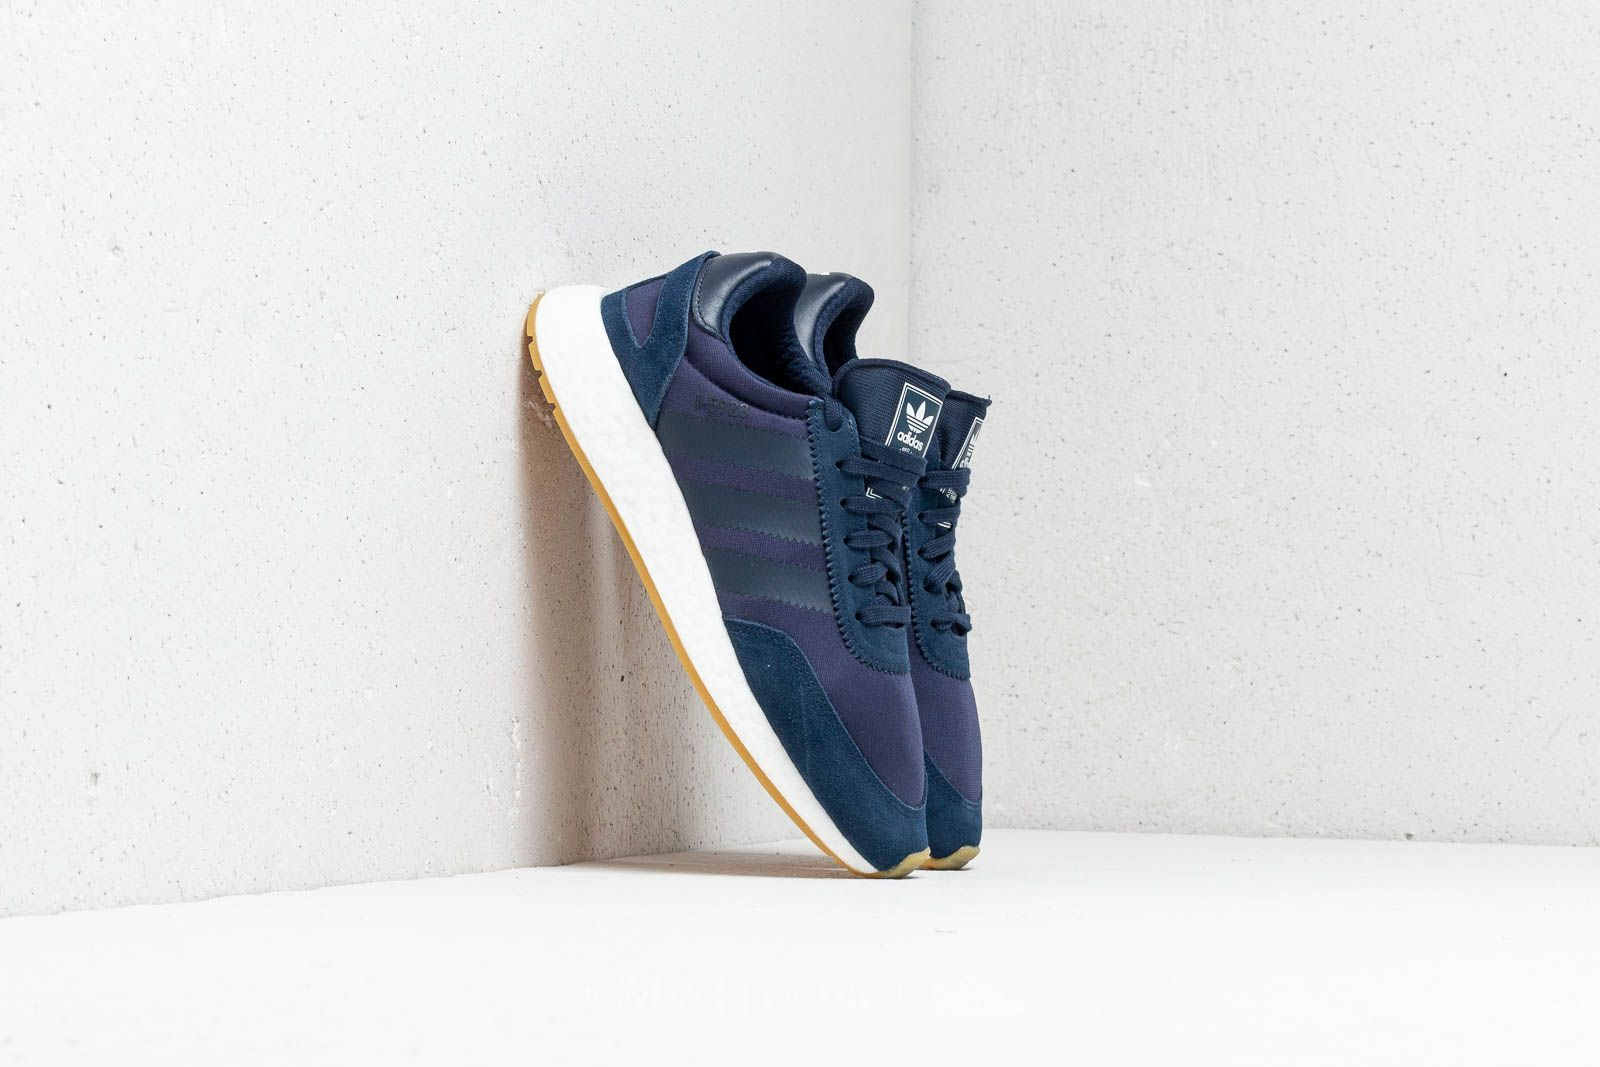 adidas I-5923 Collegiate Navy  Collegiate Navy  Gum 3 at a great price 3a398f503